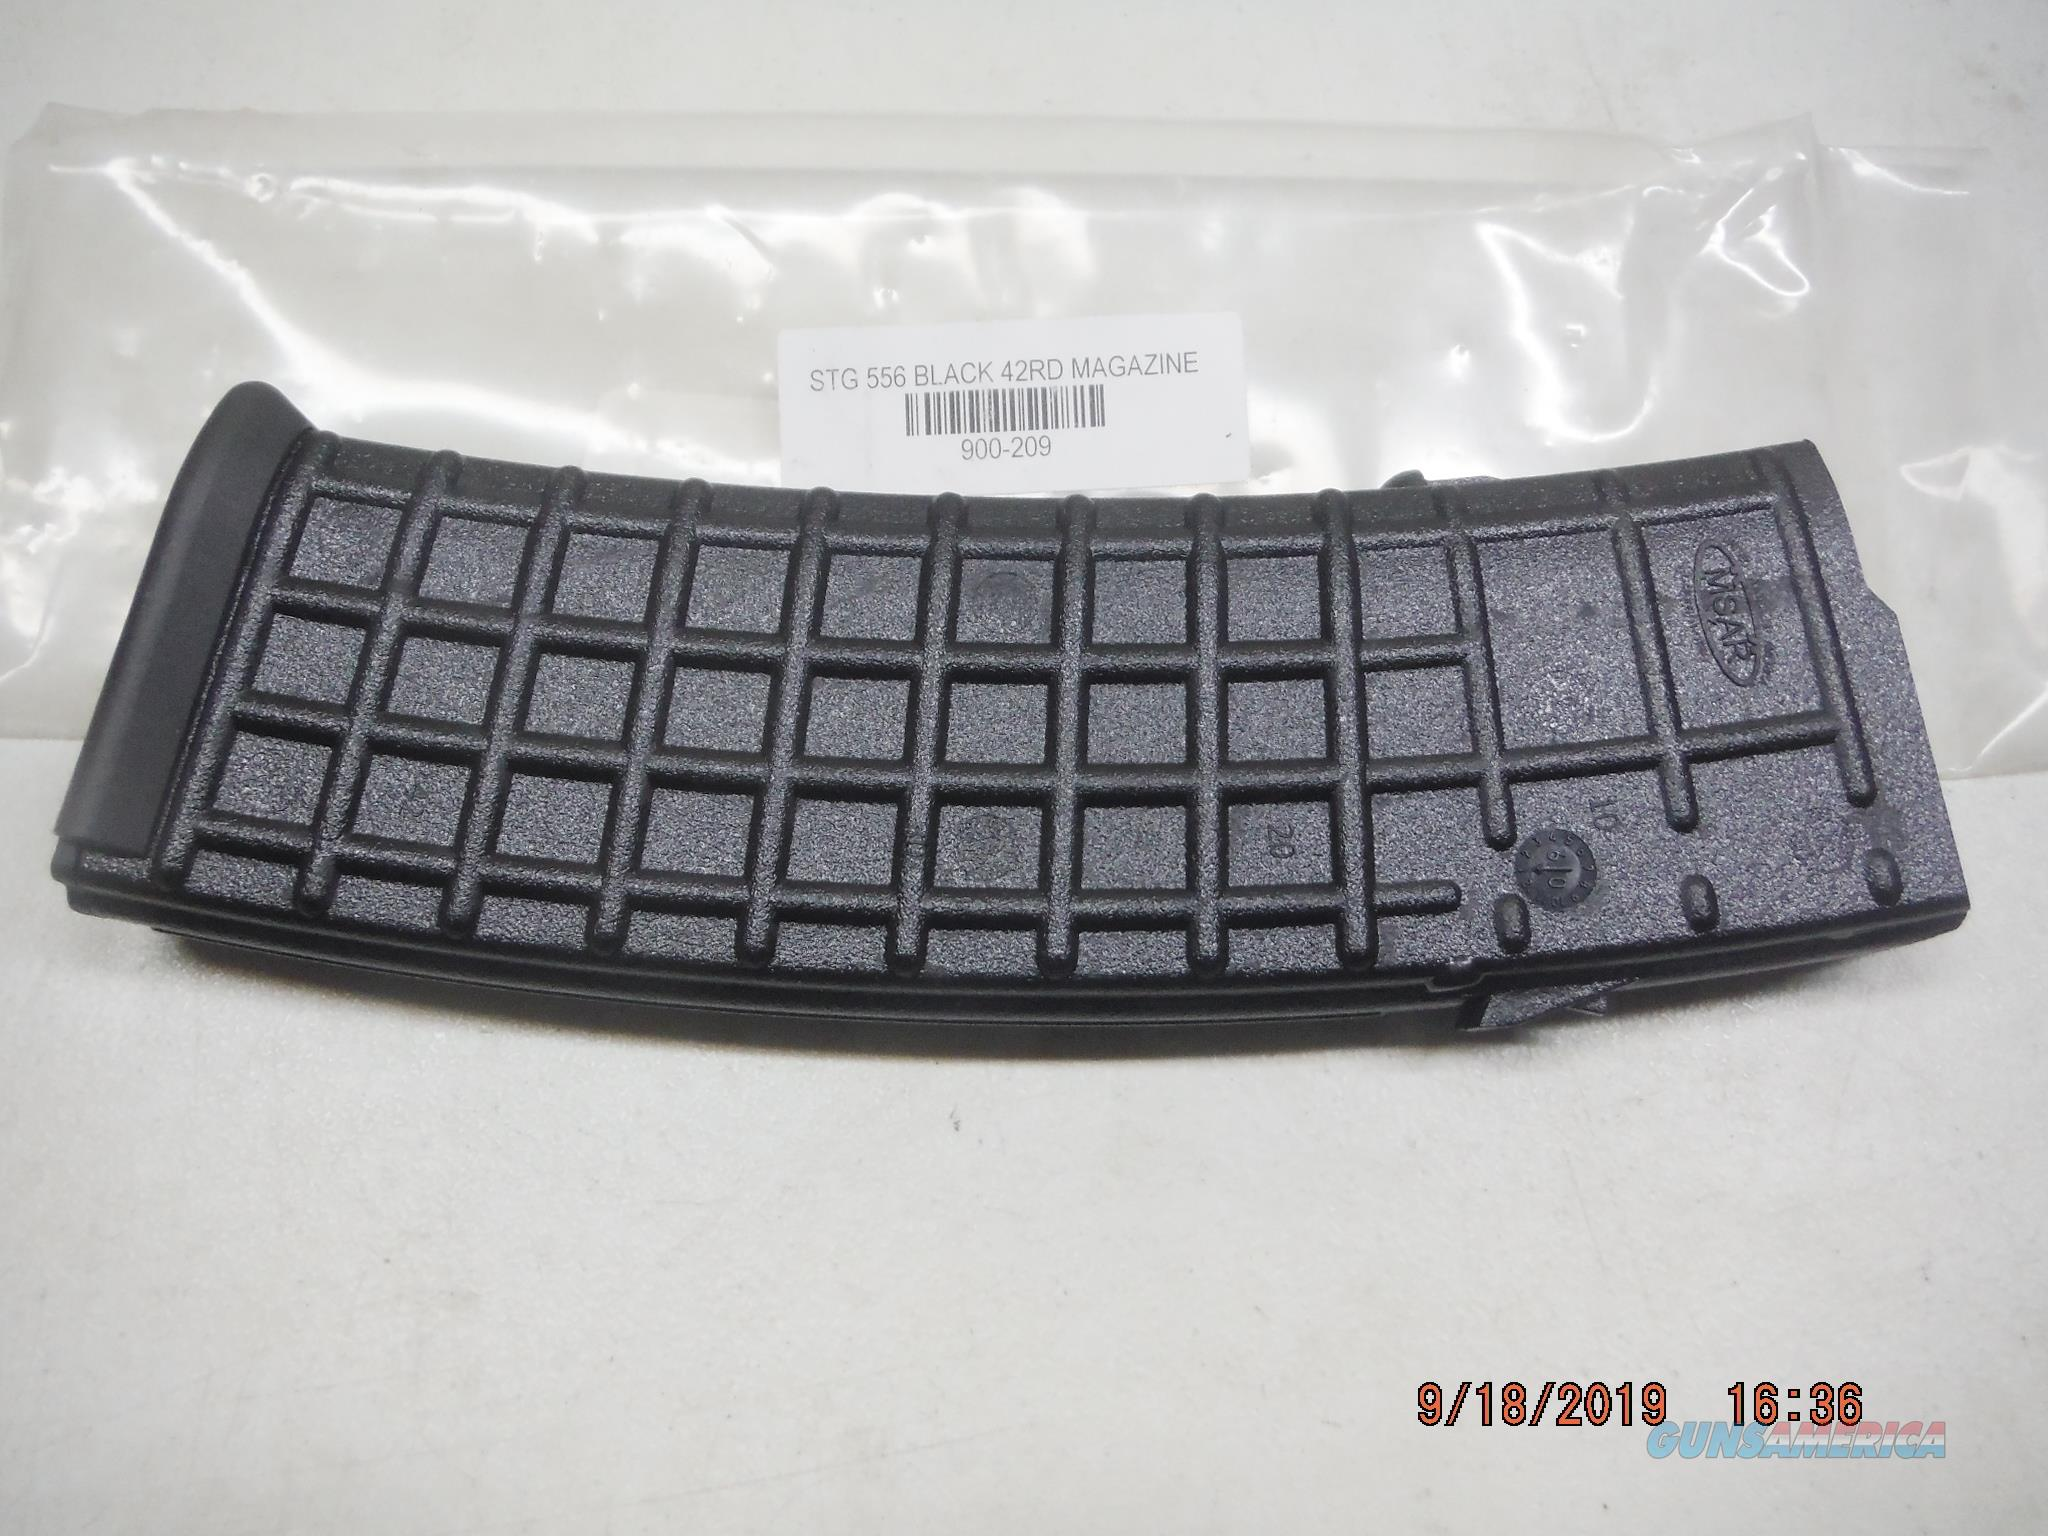 Steyr Aug Magazine 223/556 42Rd New Factory Black Poly USA  Non-Guns > Magazines & Clips > Rifle Magazines > Other